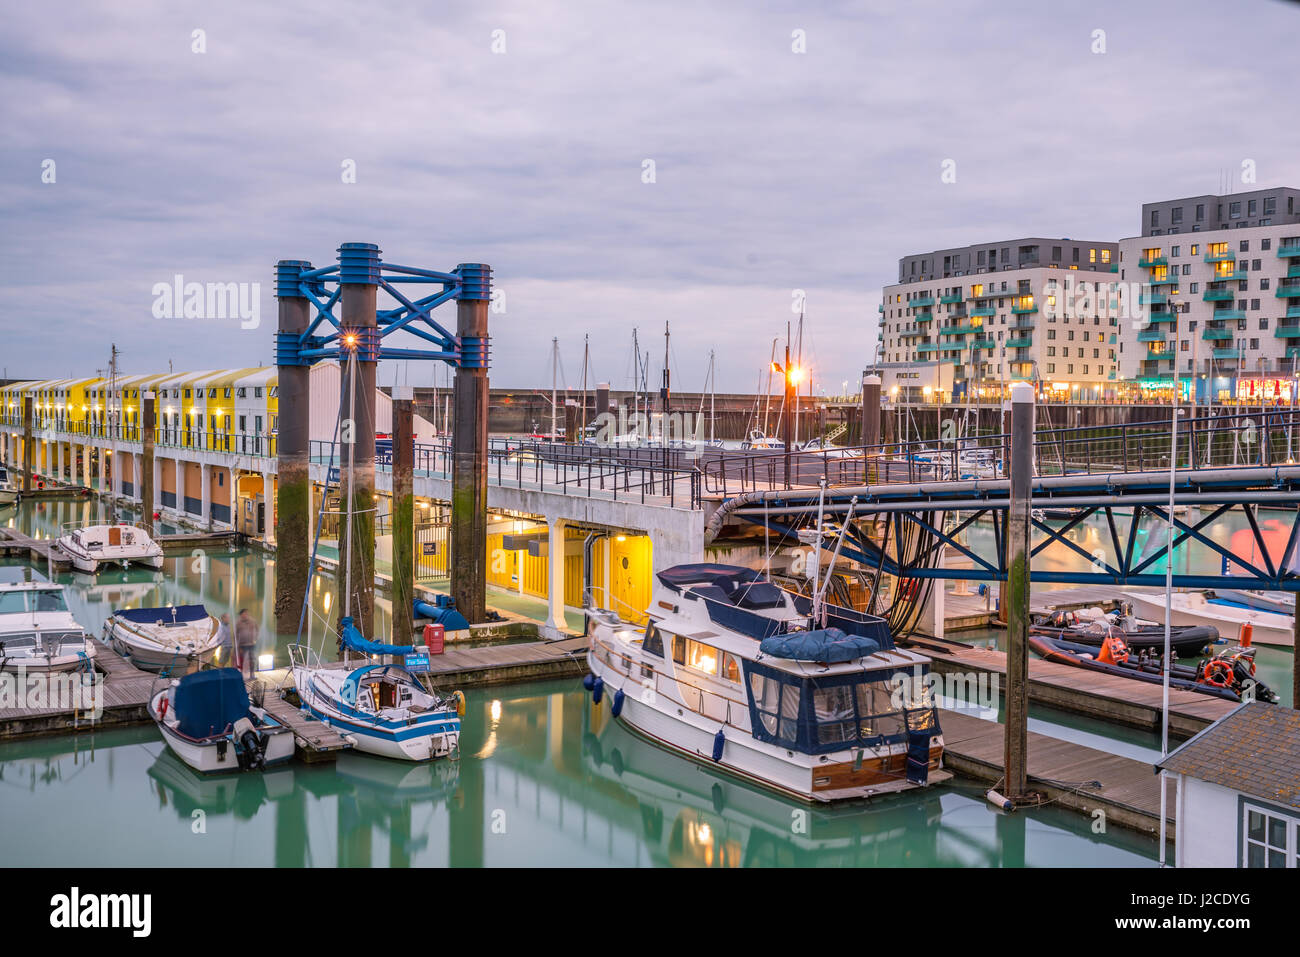 Brighton, England. 13 April 2017.Boats, yachts, and fishing boats moored at Brighton Marina docs on a cloudy day. Stock Photo